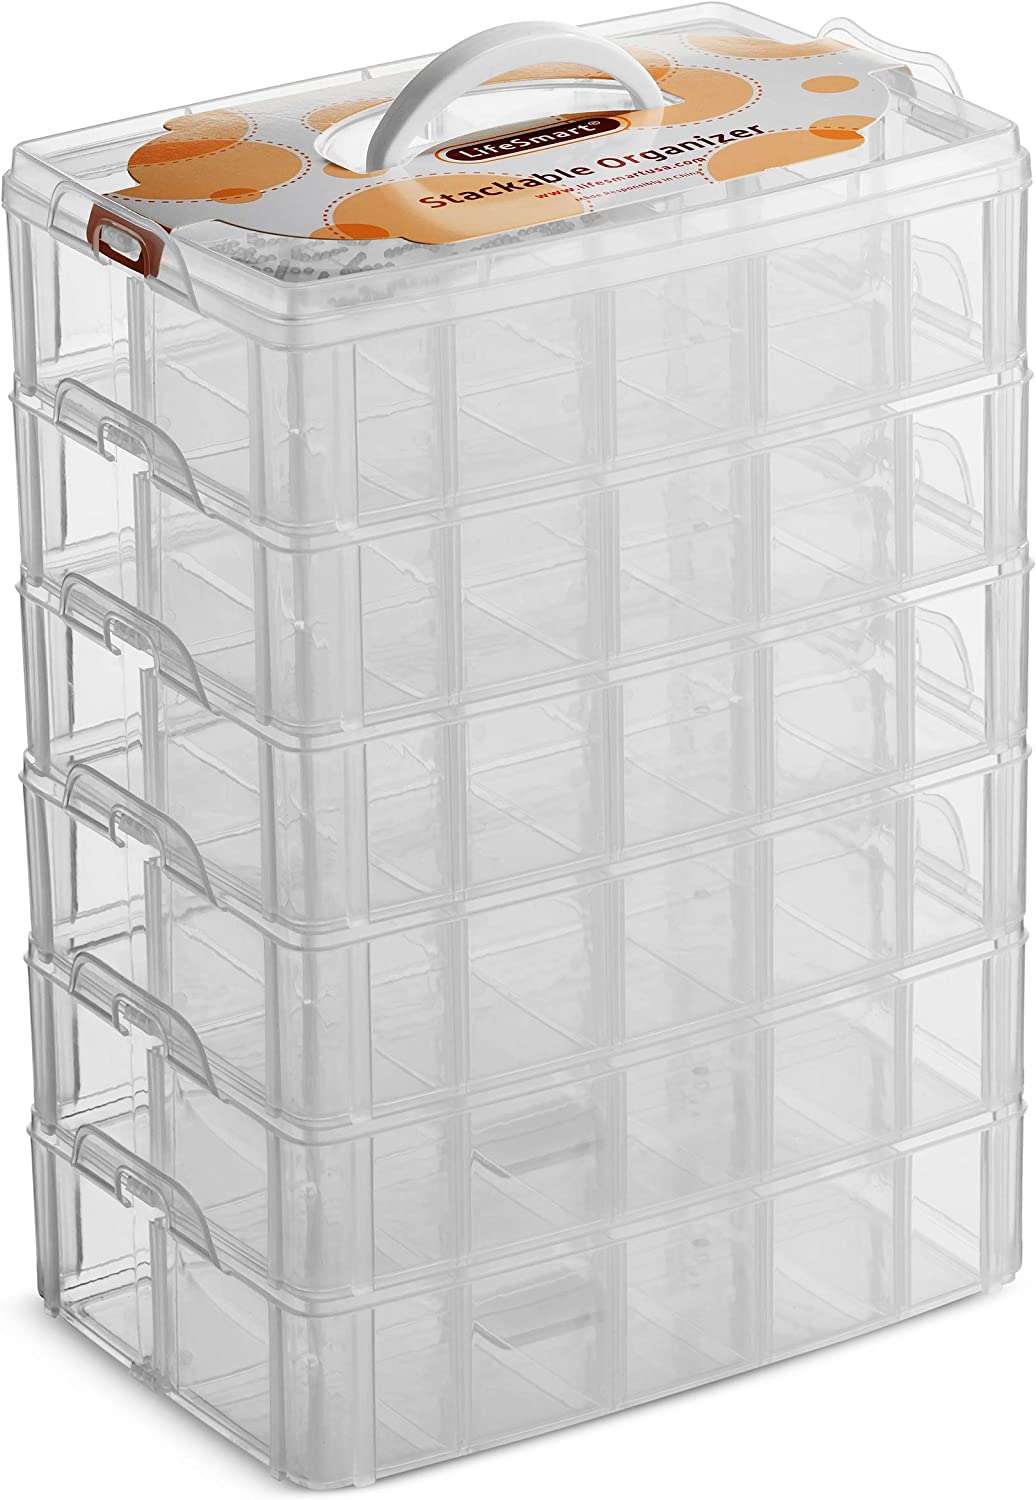 B07TTDM48K LifeSmart USA Stackable Storage Container Clear 60 Adjustable Compartments Compatible with Lego Dimensions Arts and Crafts Piping Tips Hardware Storage Not Suitable for Ornaments (Standard 6 Tier) 81NKwM2BURyL